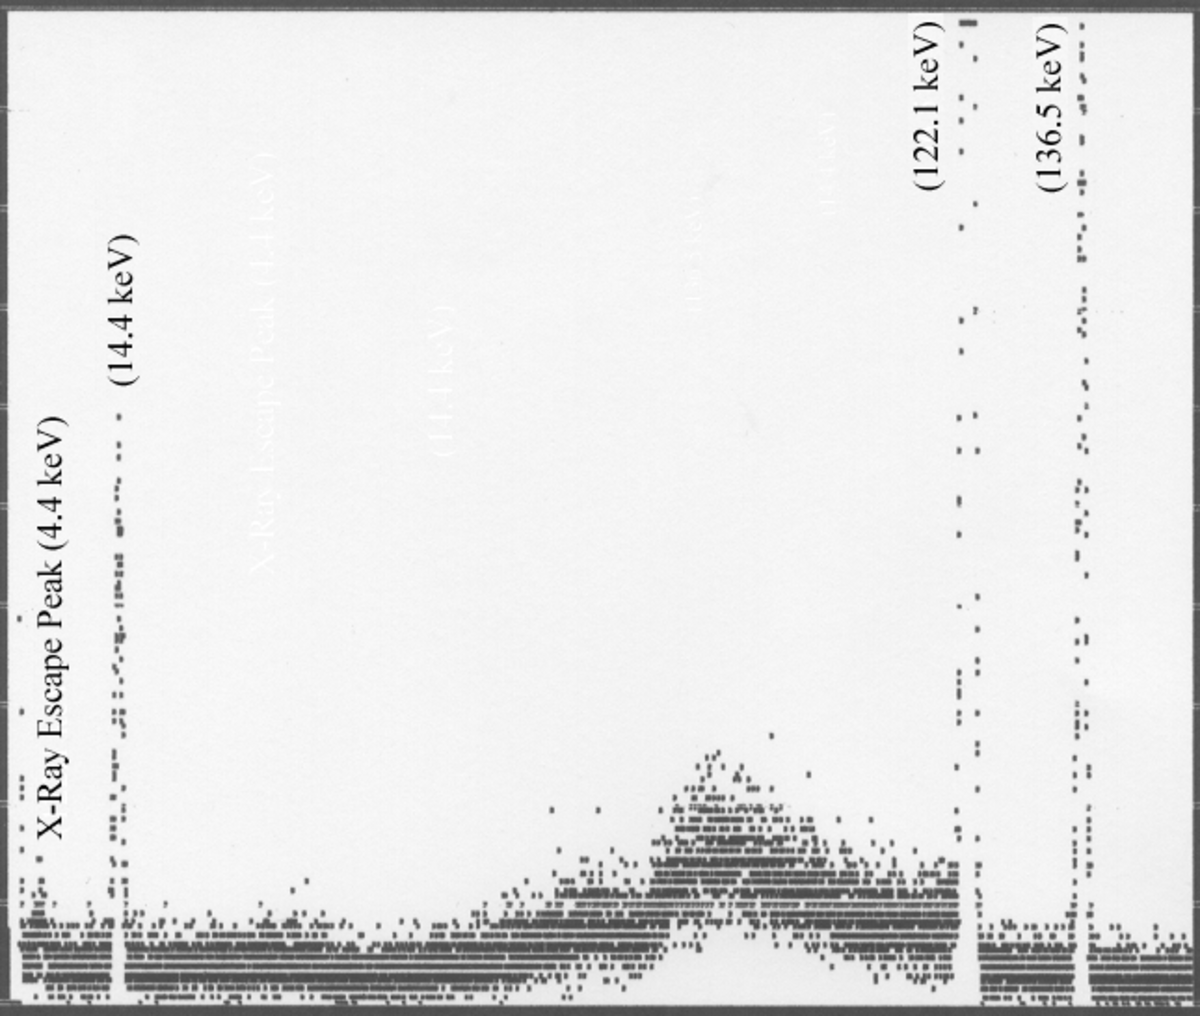 Gamma ray spectrum for cobalt-57 showing an x-ray escape peak.